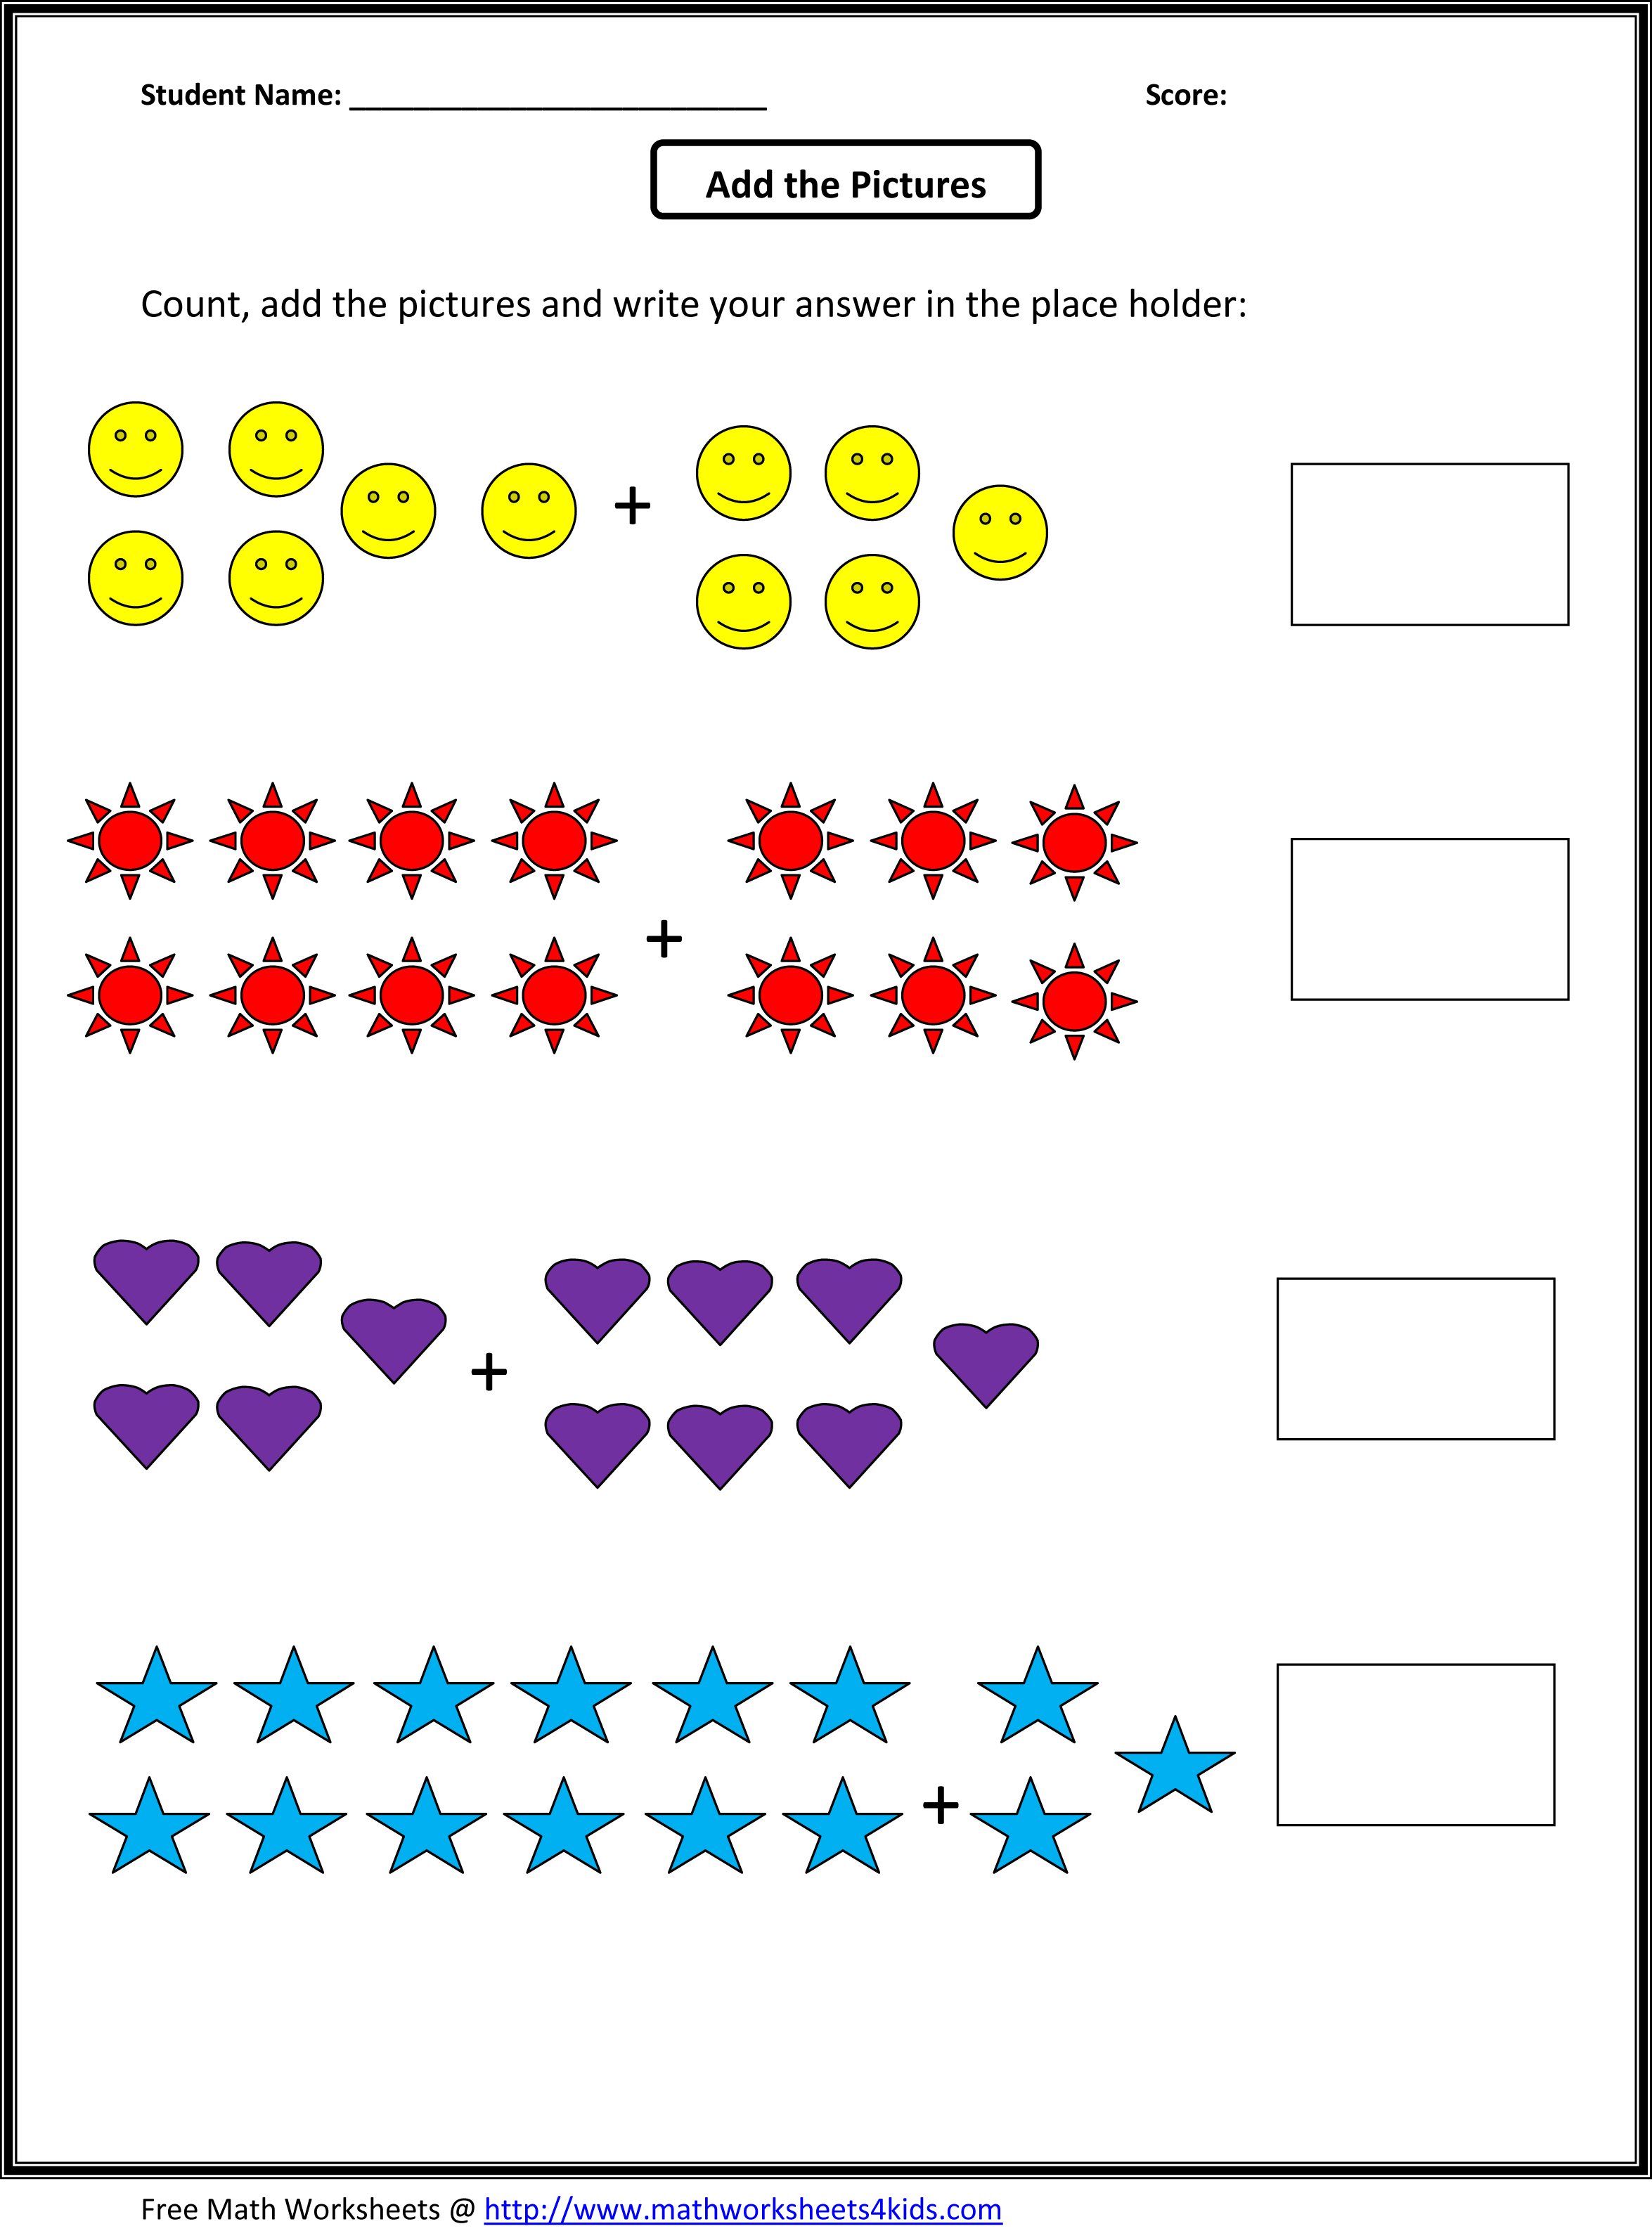 Weirdmailus  Inspiring Grade  Maths Worksheet  Reocurent With Heavenly Math Worksheets For St Grade Free  Reocurent With Charming Worksheet Angles Also Verb Worksheet For Grade  In Addition Printable Drawing Worksheets And Arithmetic Patterns Worksheets As Well As P Maths Worksheets Additionally Missing Addends Worksheet First Grade From Reocurentcom With Weirdmailus  Heavenly Grade  Maths Worksheet  Reocurent With Charming Math Worksheets For St Grade Free  Reocurent And Inspiring Worksheet Angles Also Verb Worksheet For Grade  In Addition Printable Drawing Worksheets From Reocurentcom